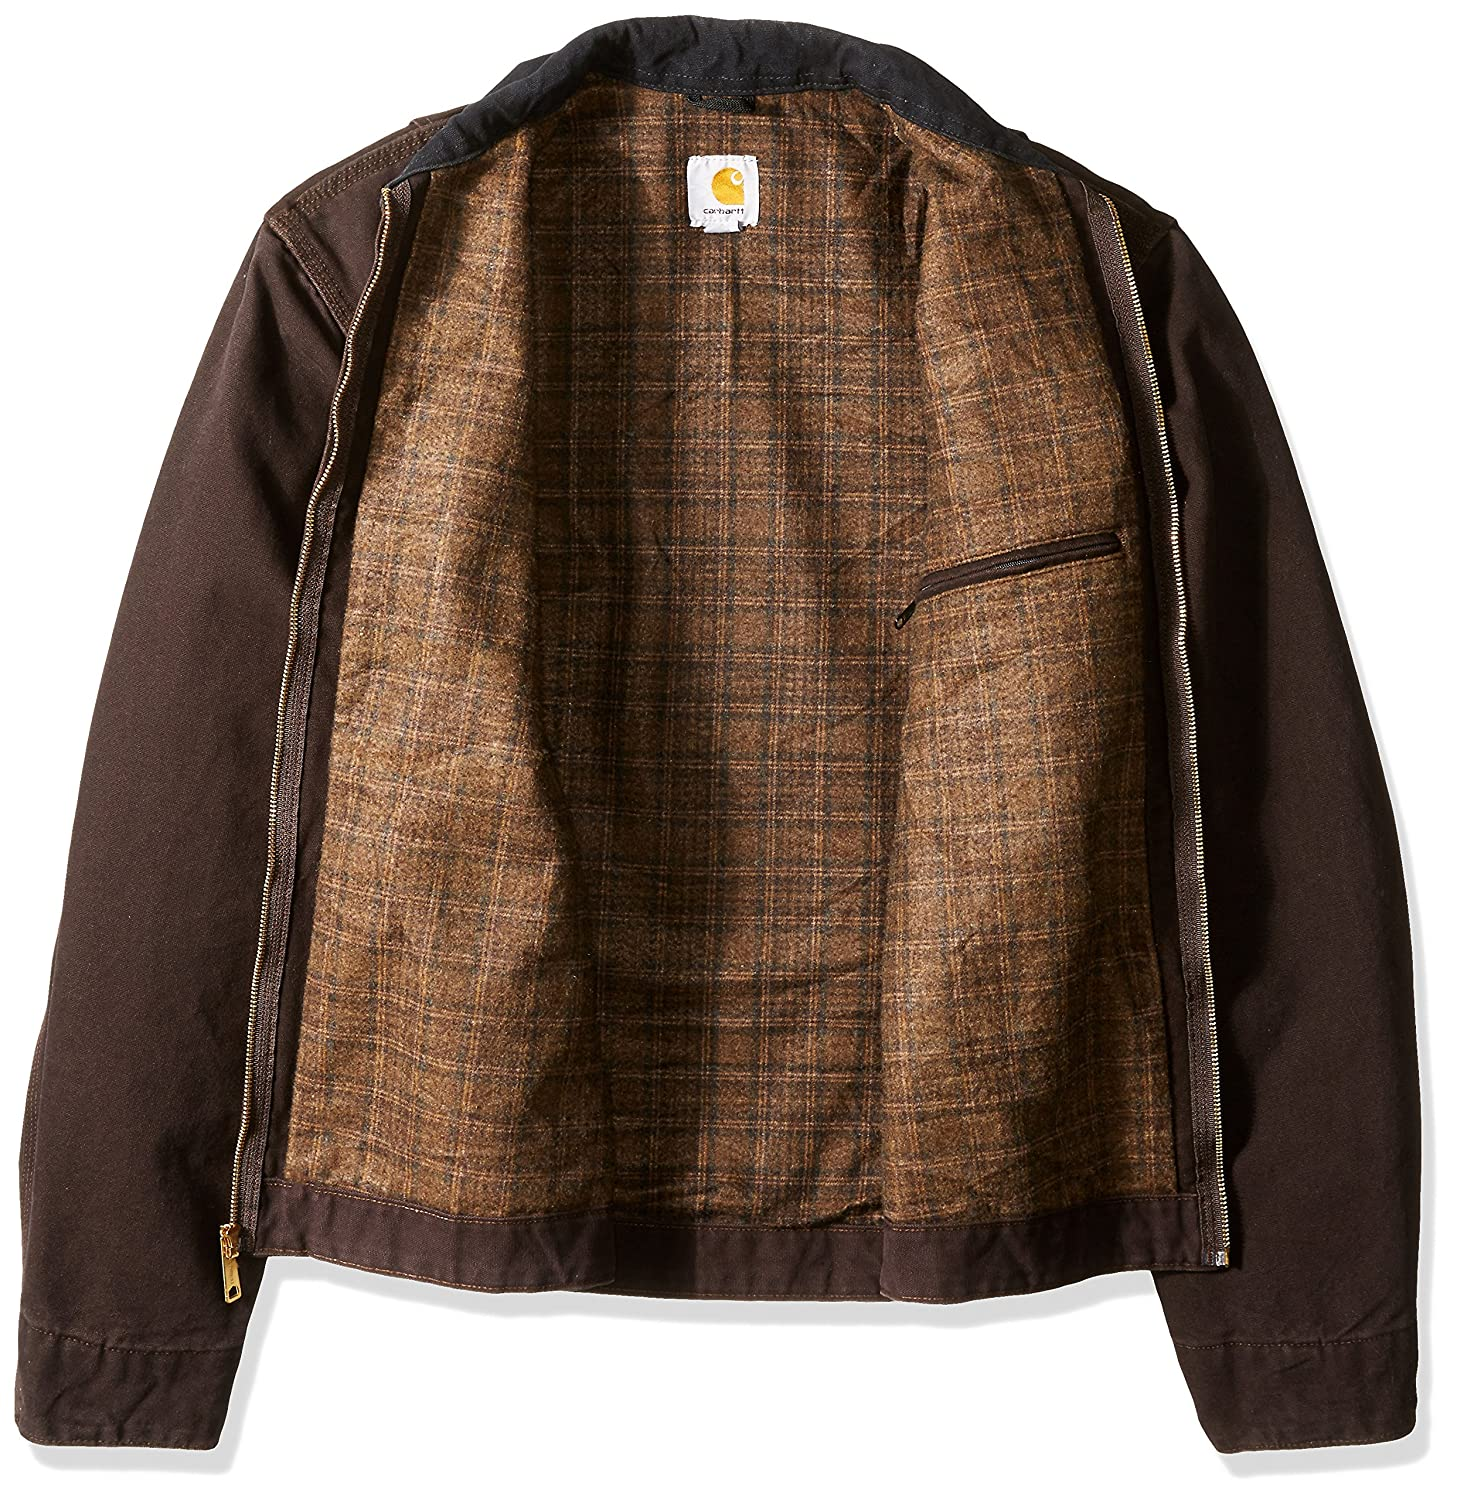 267773a1316 Amazon.com  Carhartt Men s Big   Tall Blanket Lined Sandstone Detroit Jacket  J97  Clothing